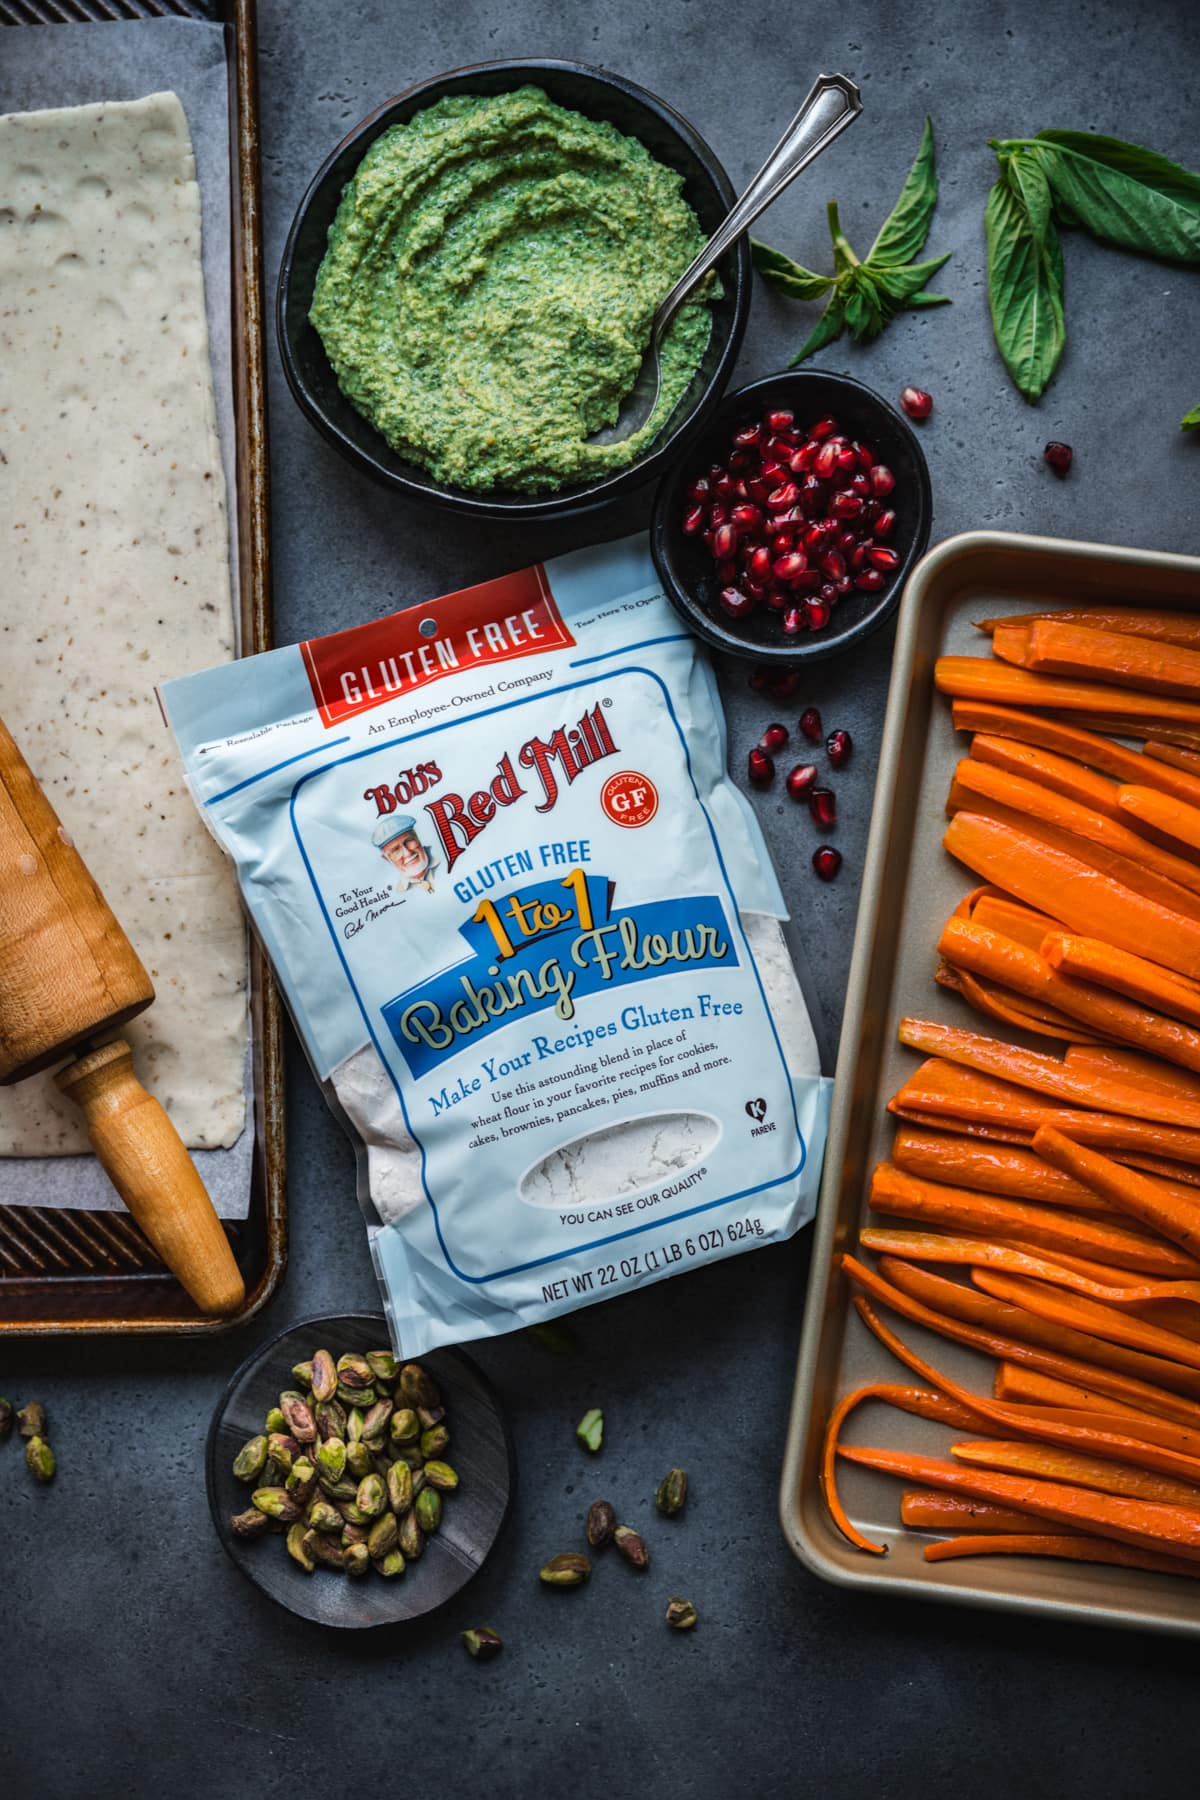 overhead view of ingredients for carrot pesto galette with Bob's Red Mill gluten free flour.